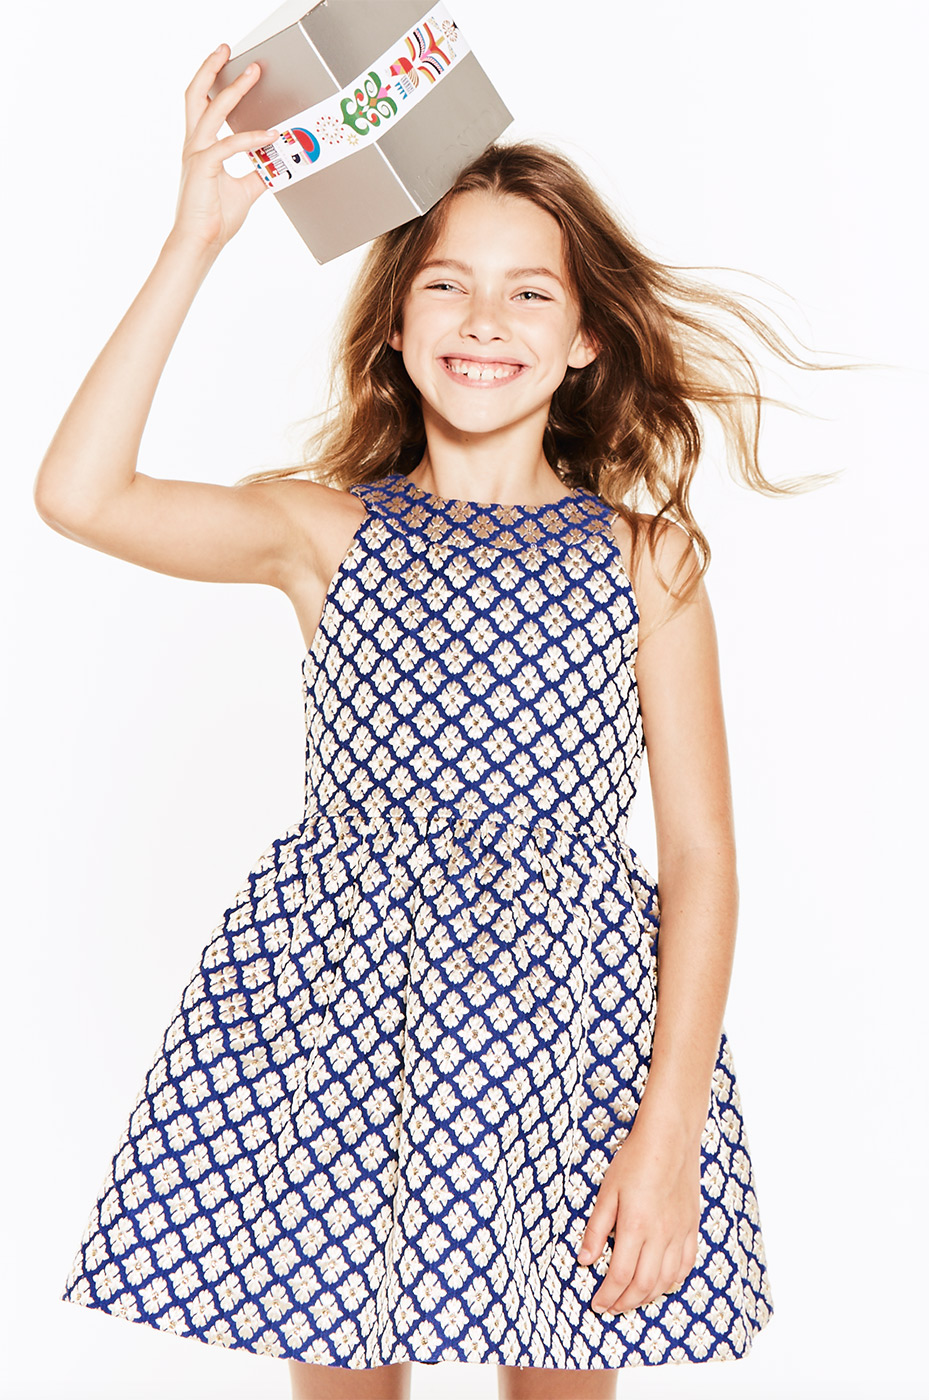 Kids fashion Photography | Nordstrom | VIKA POBEDA